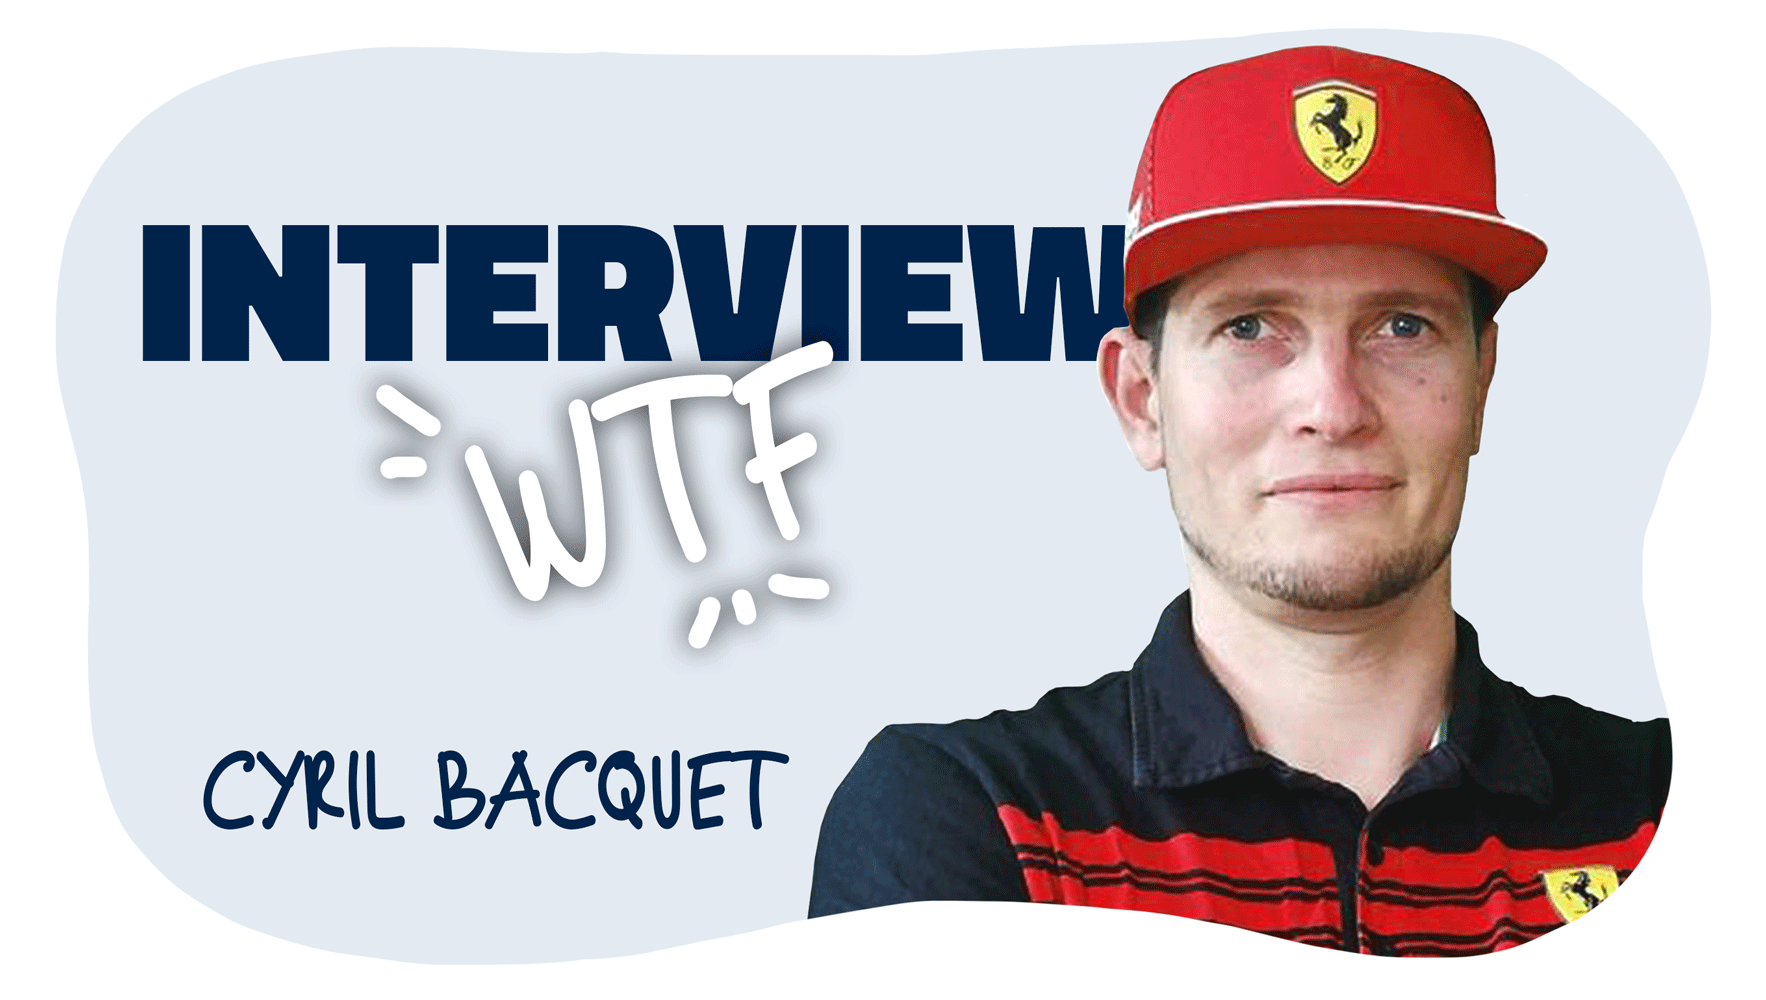 cyril-bacquet-interview-rectangle